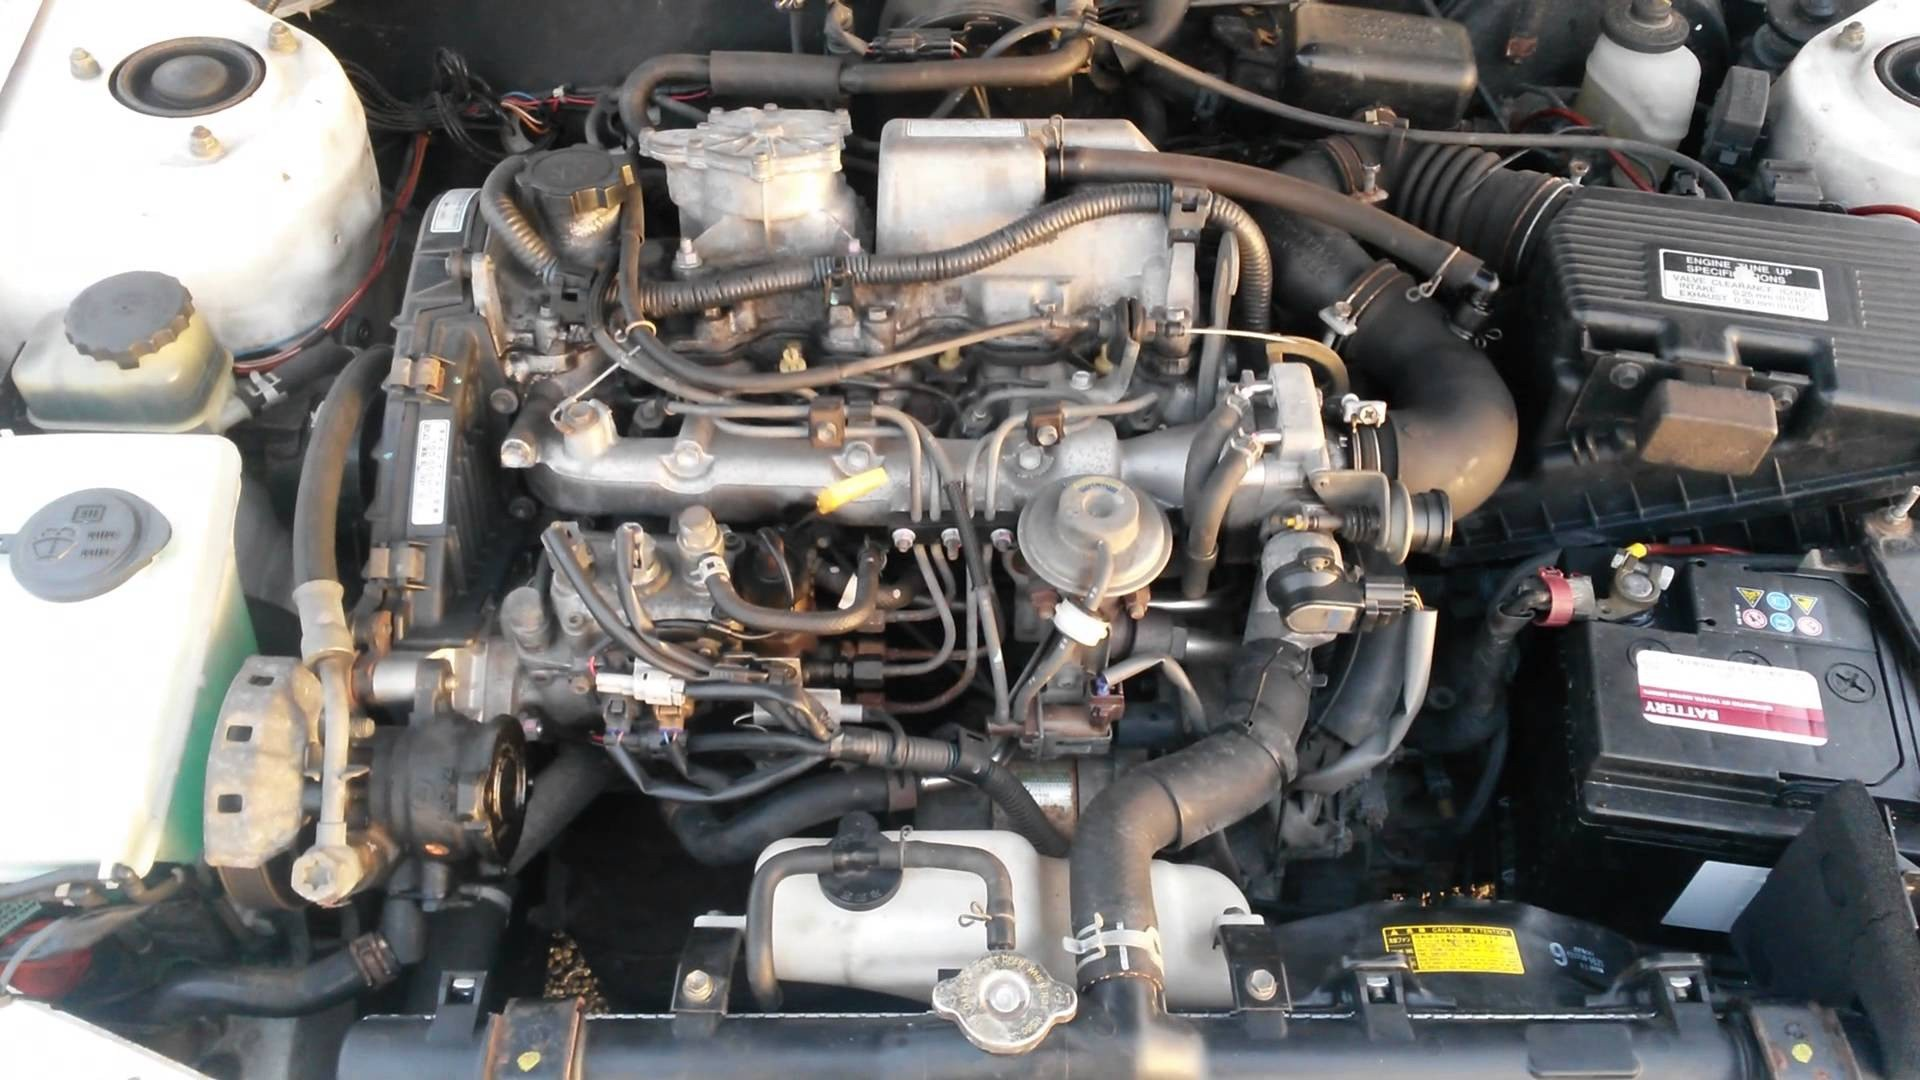 2006 toyota Corolla Engine Diagram Hot toyota Corolla E11 2 0d 2ce Start Up Specs and Review – toyota Of 2006 toyota Corolla Engine Diagram